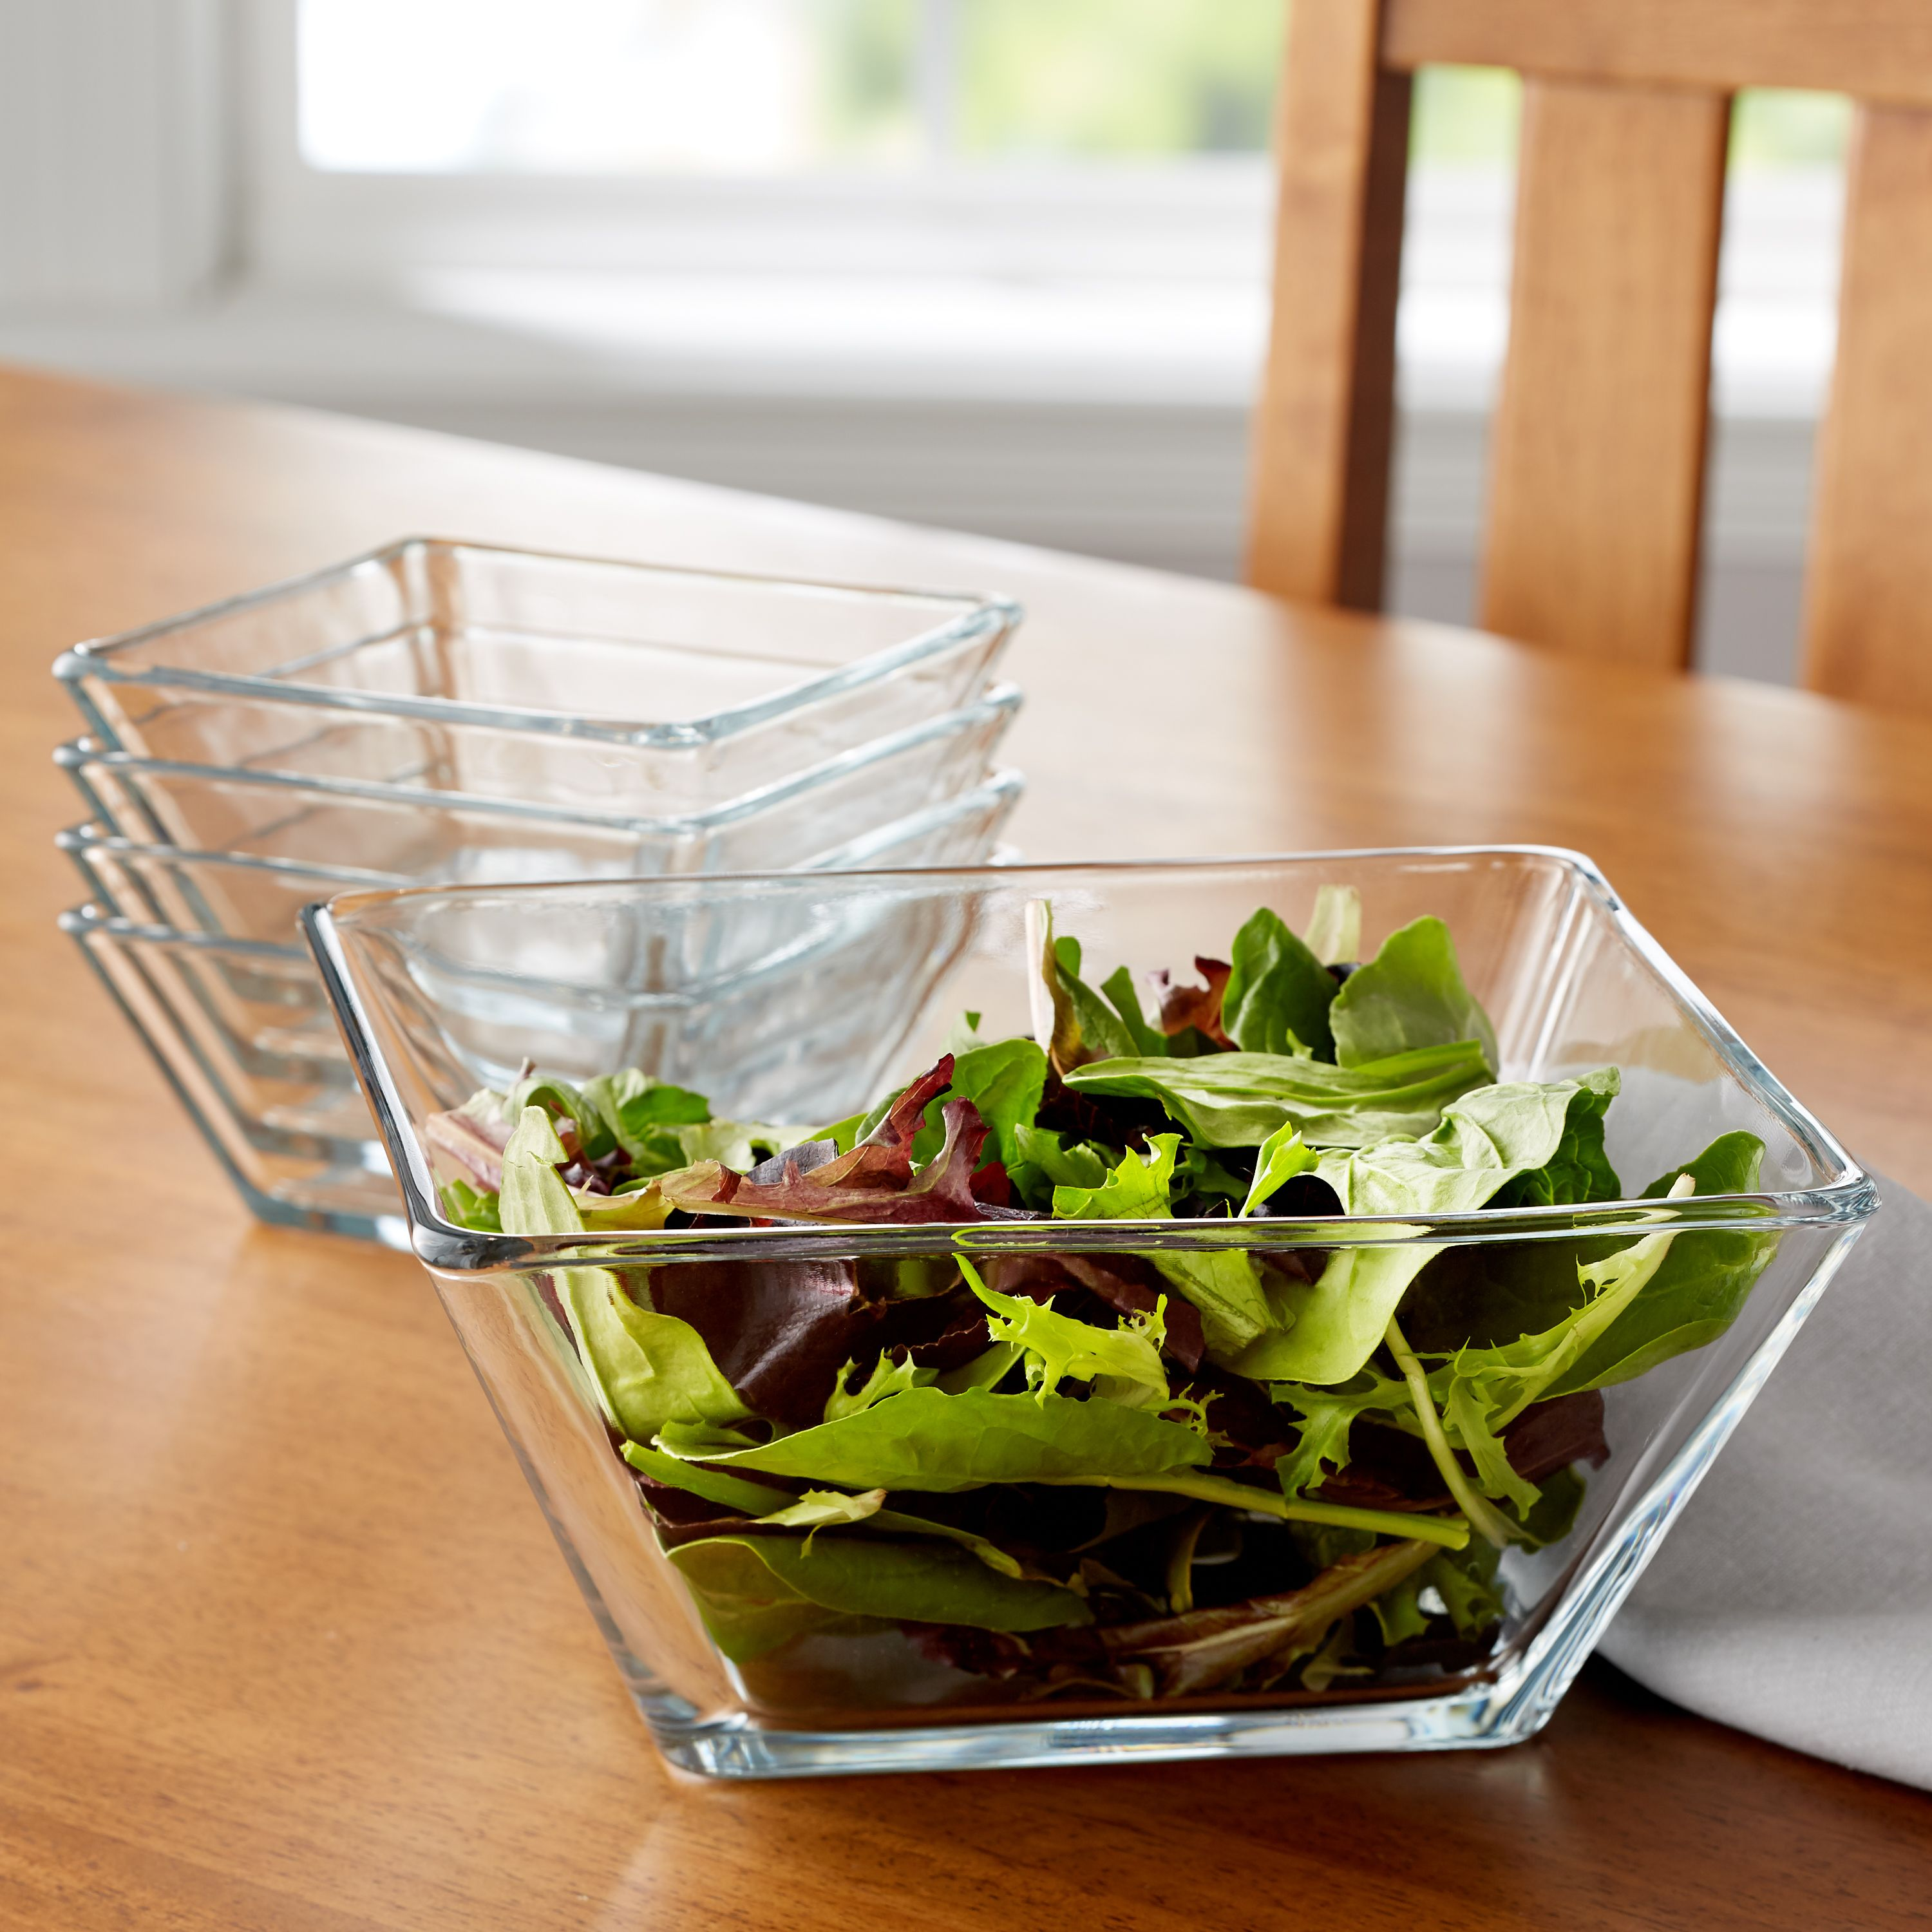 Mainstays 5-Piece Square Glass Serving Bowl Set by Libbey